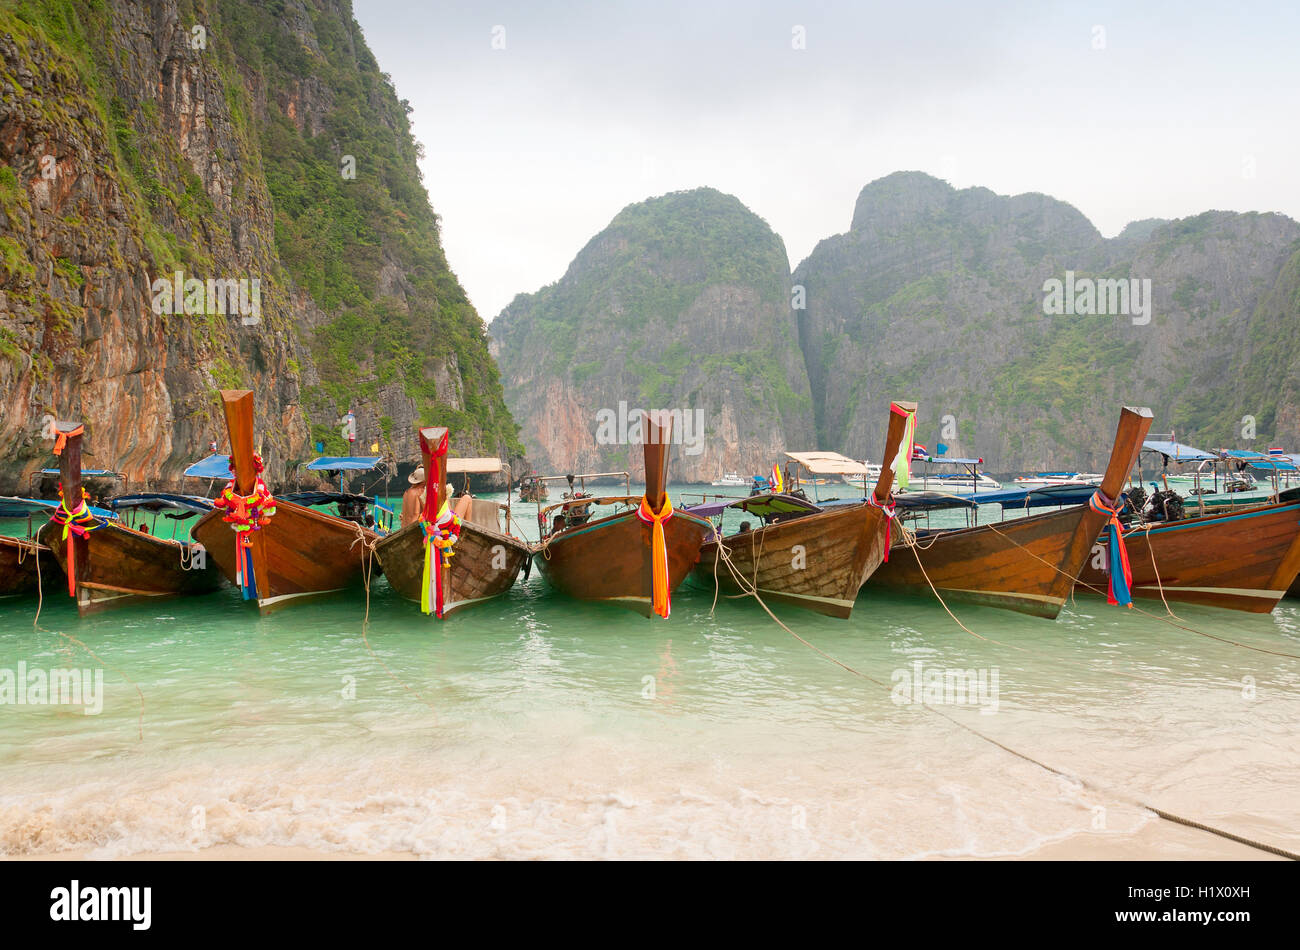 Boats lined up on Maya Bay located on Phi Phi Ley Island in Andaman Sea Thailand on Christmas day in the tropics. - Stock Image